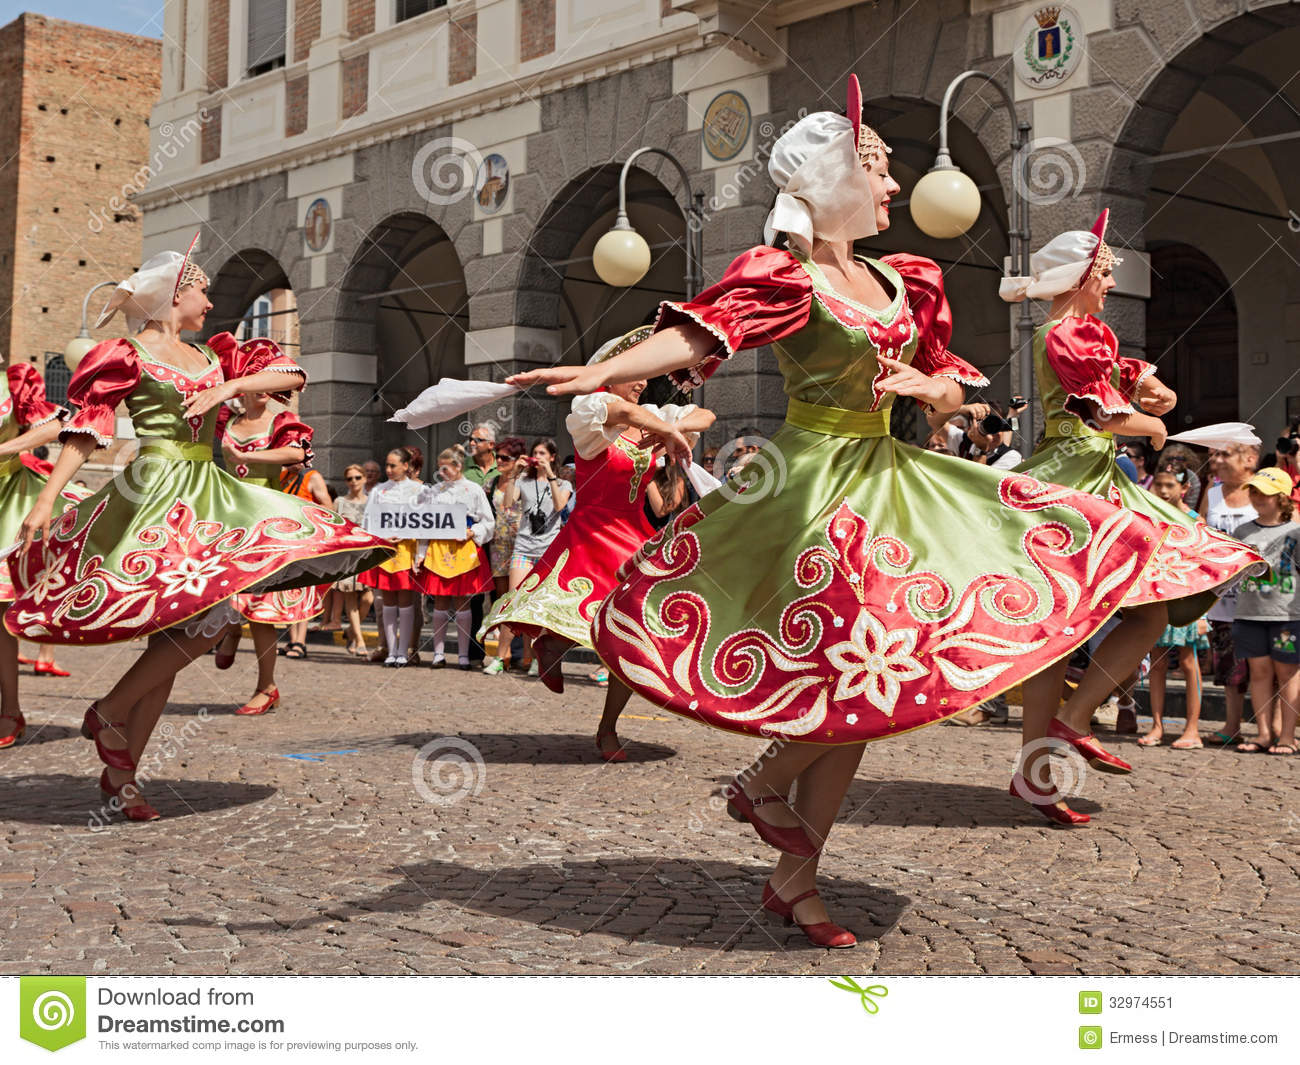 Folklore russe plus folklore russe